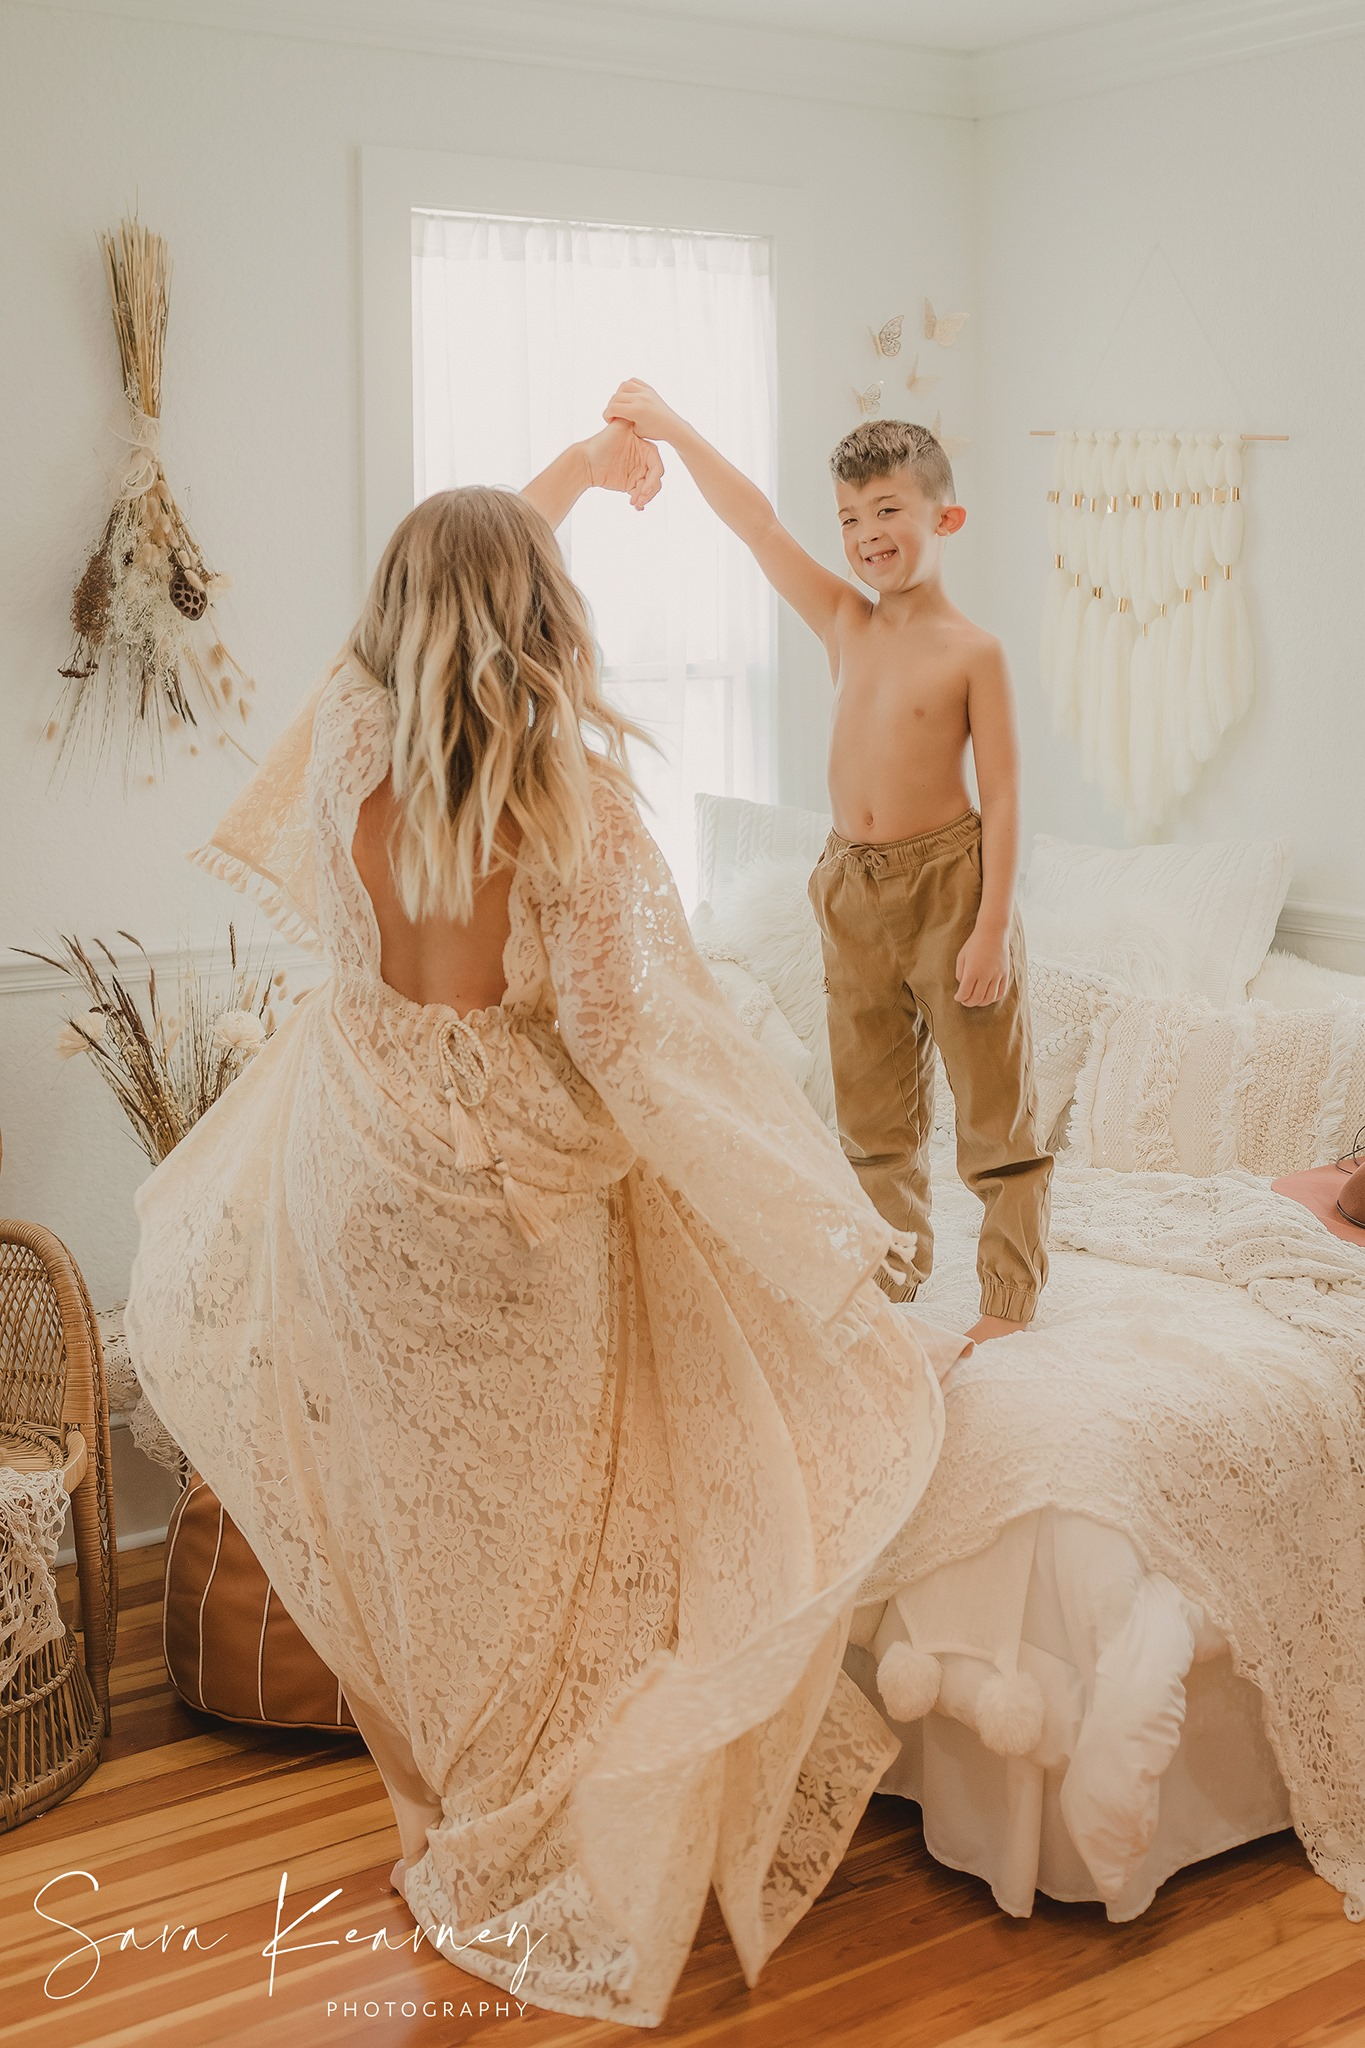 Boho Photo Shoot!! Mommy photoshoot | Sara Kearney Orlando Photographer 4